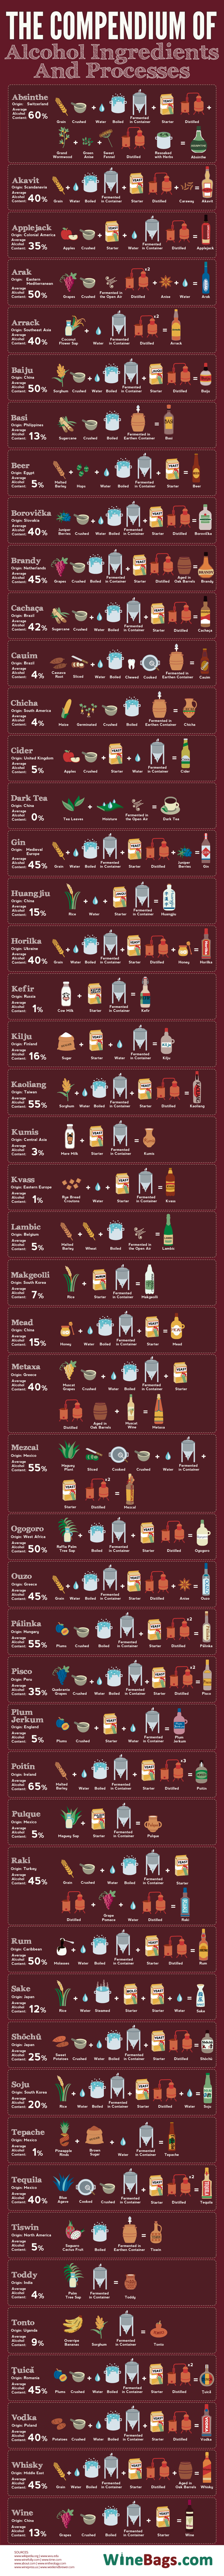 the-compendium-of-alcohol-ingredients-and-processes